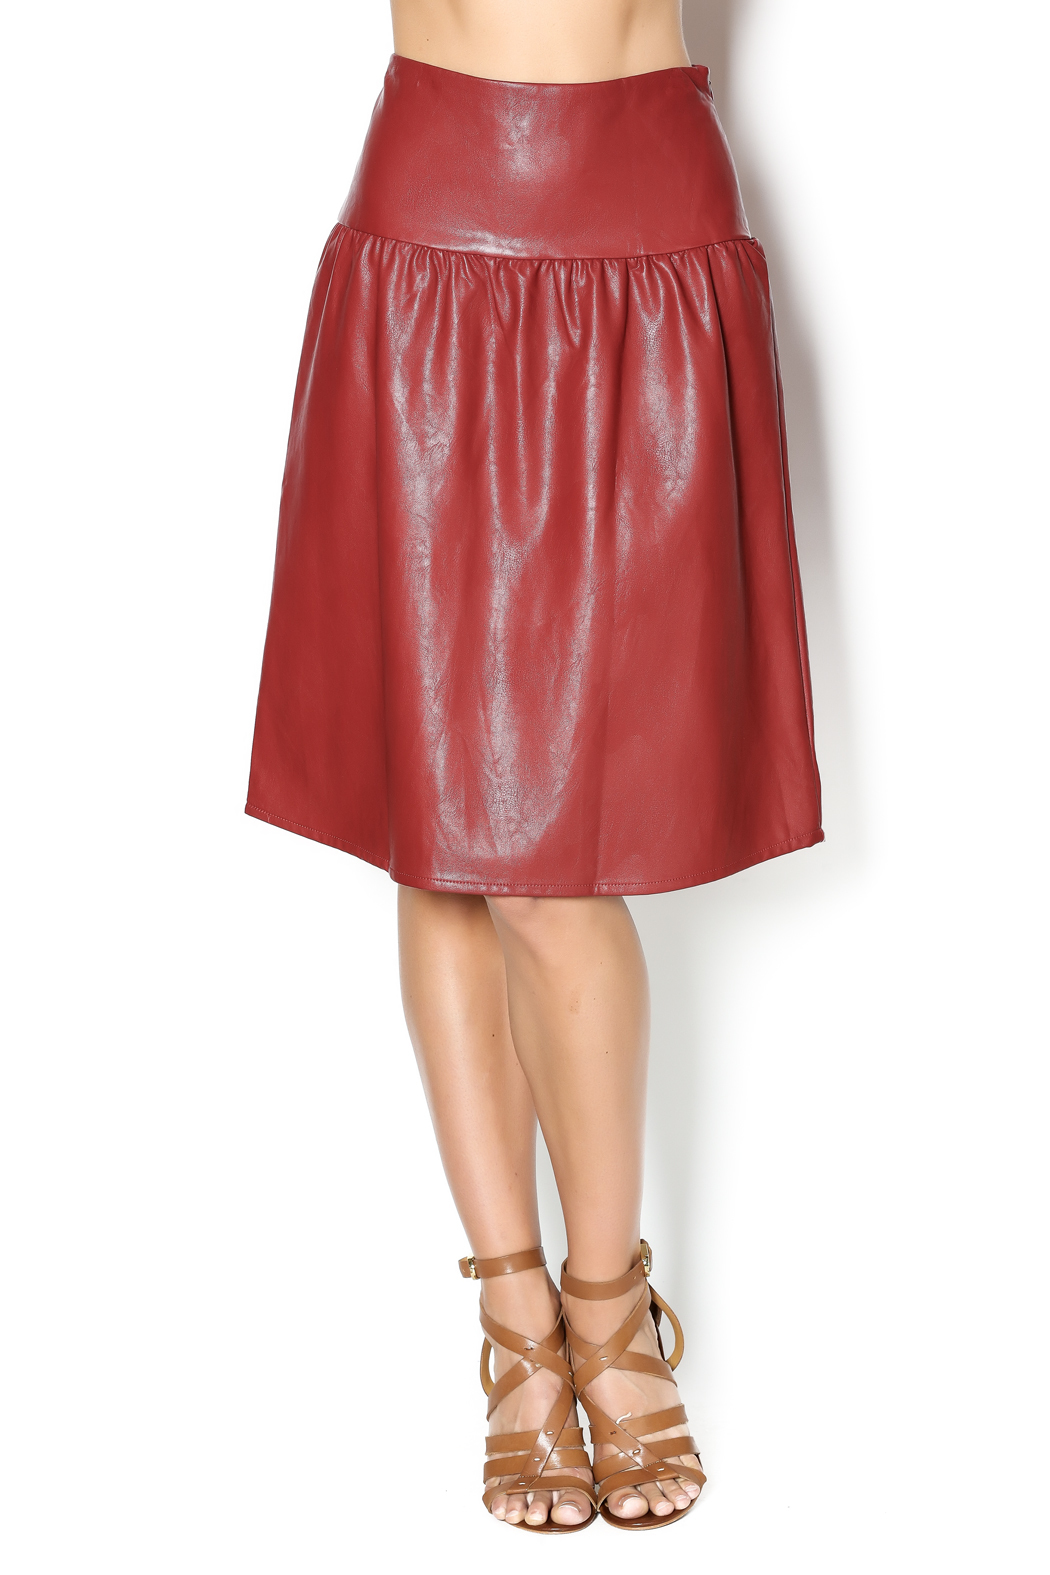 junee Faux Leather Skirt - Main Image